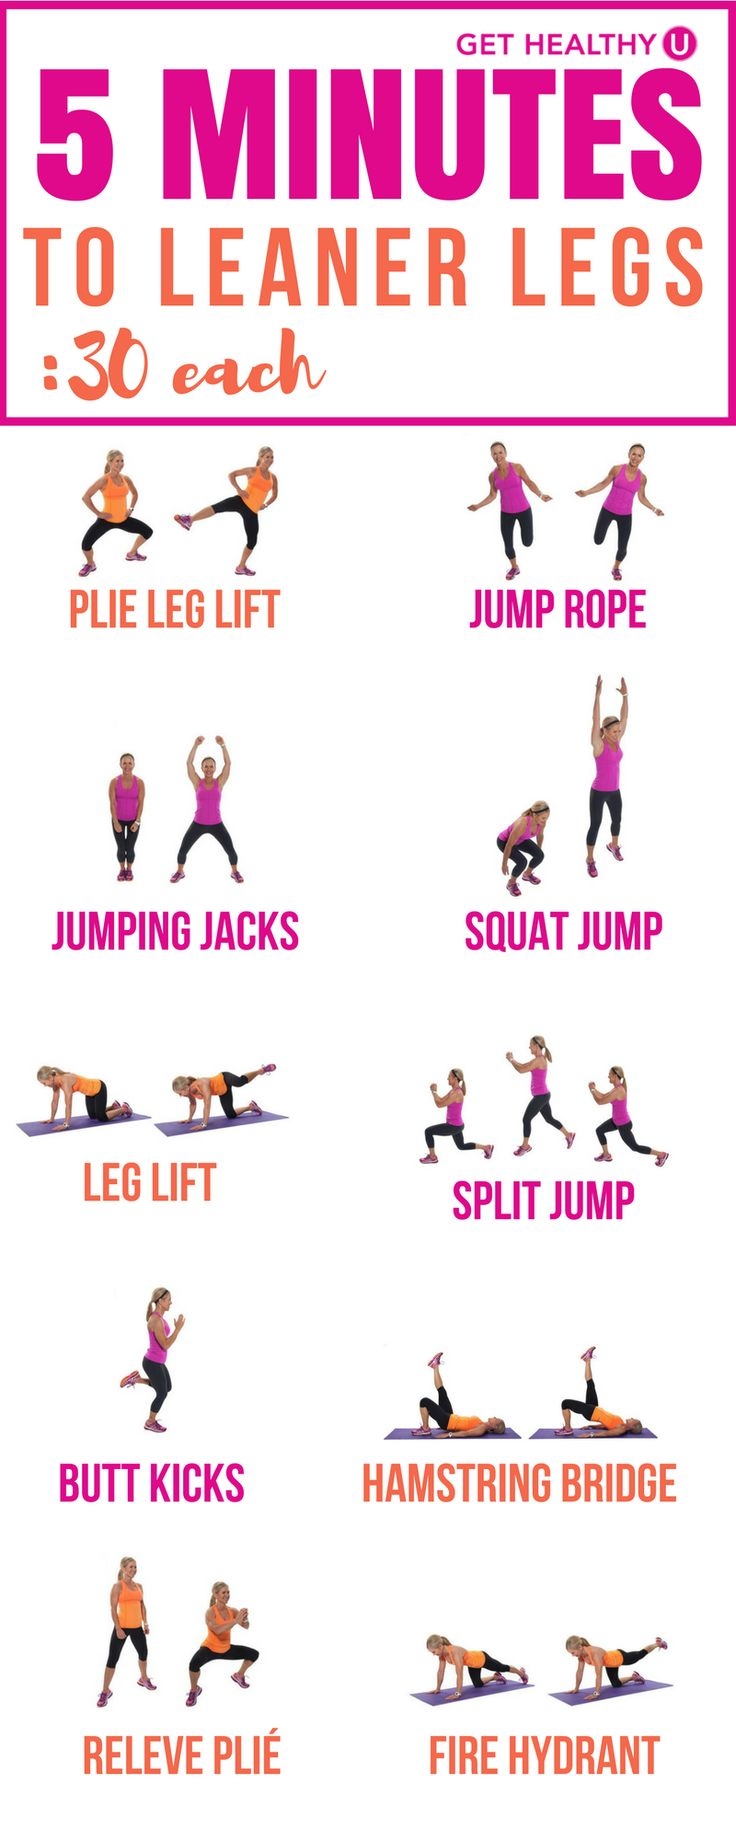 """Let's create something a little leaner, stronger, and get rid of some of that extra """"stuff' on the outer edge that we don't like so much! This workout gives you five great exercises that will tone and tighten your thighs. Then you will get five bonus high intensity cardio moves to help you shed fat."""